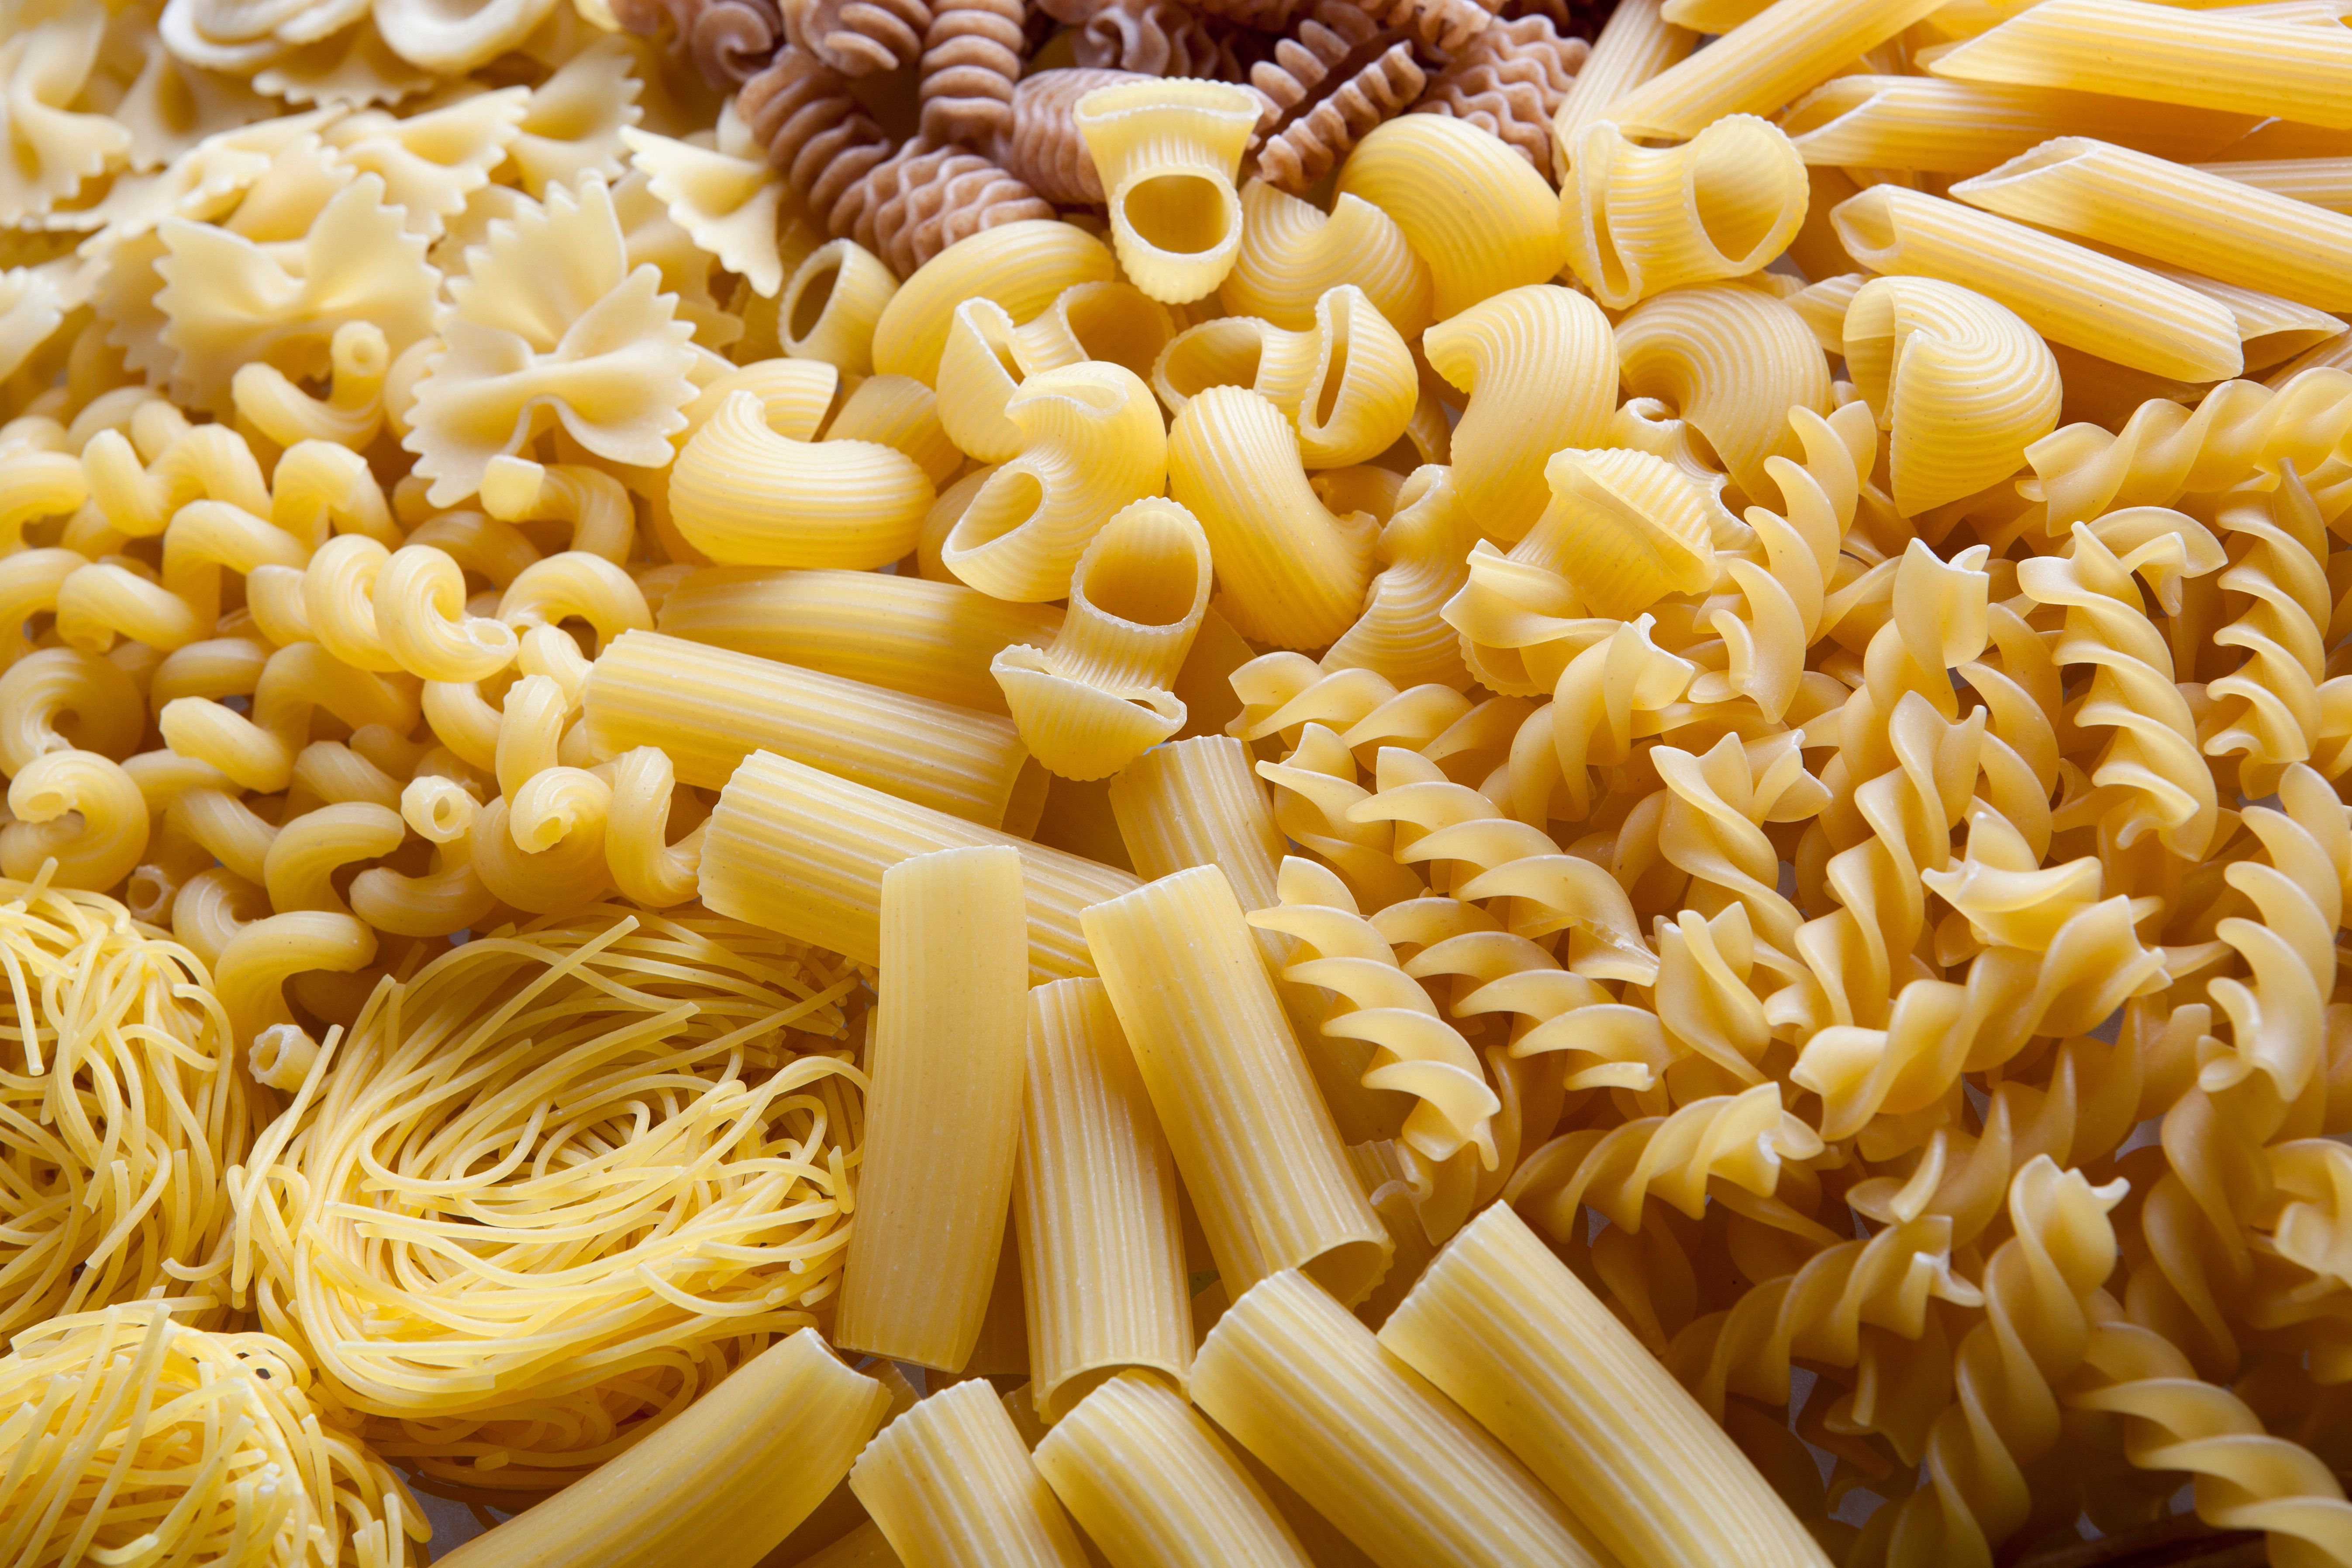 The Best Way To Cook Pasta, According To